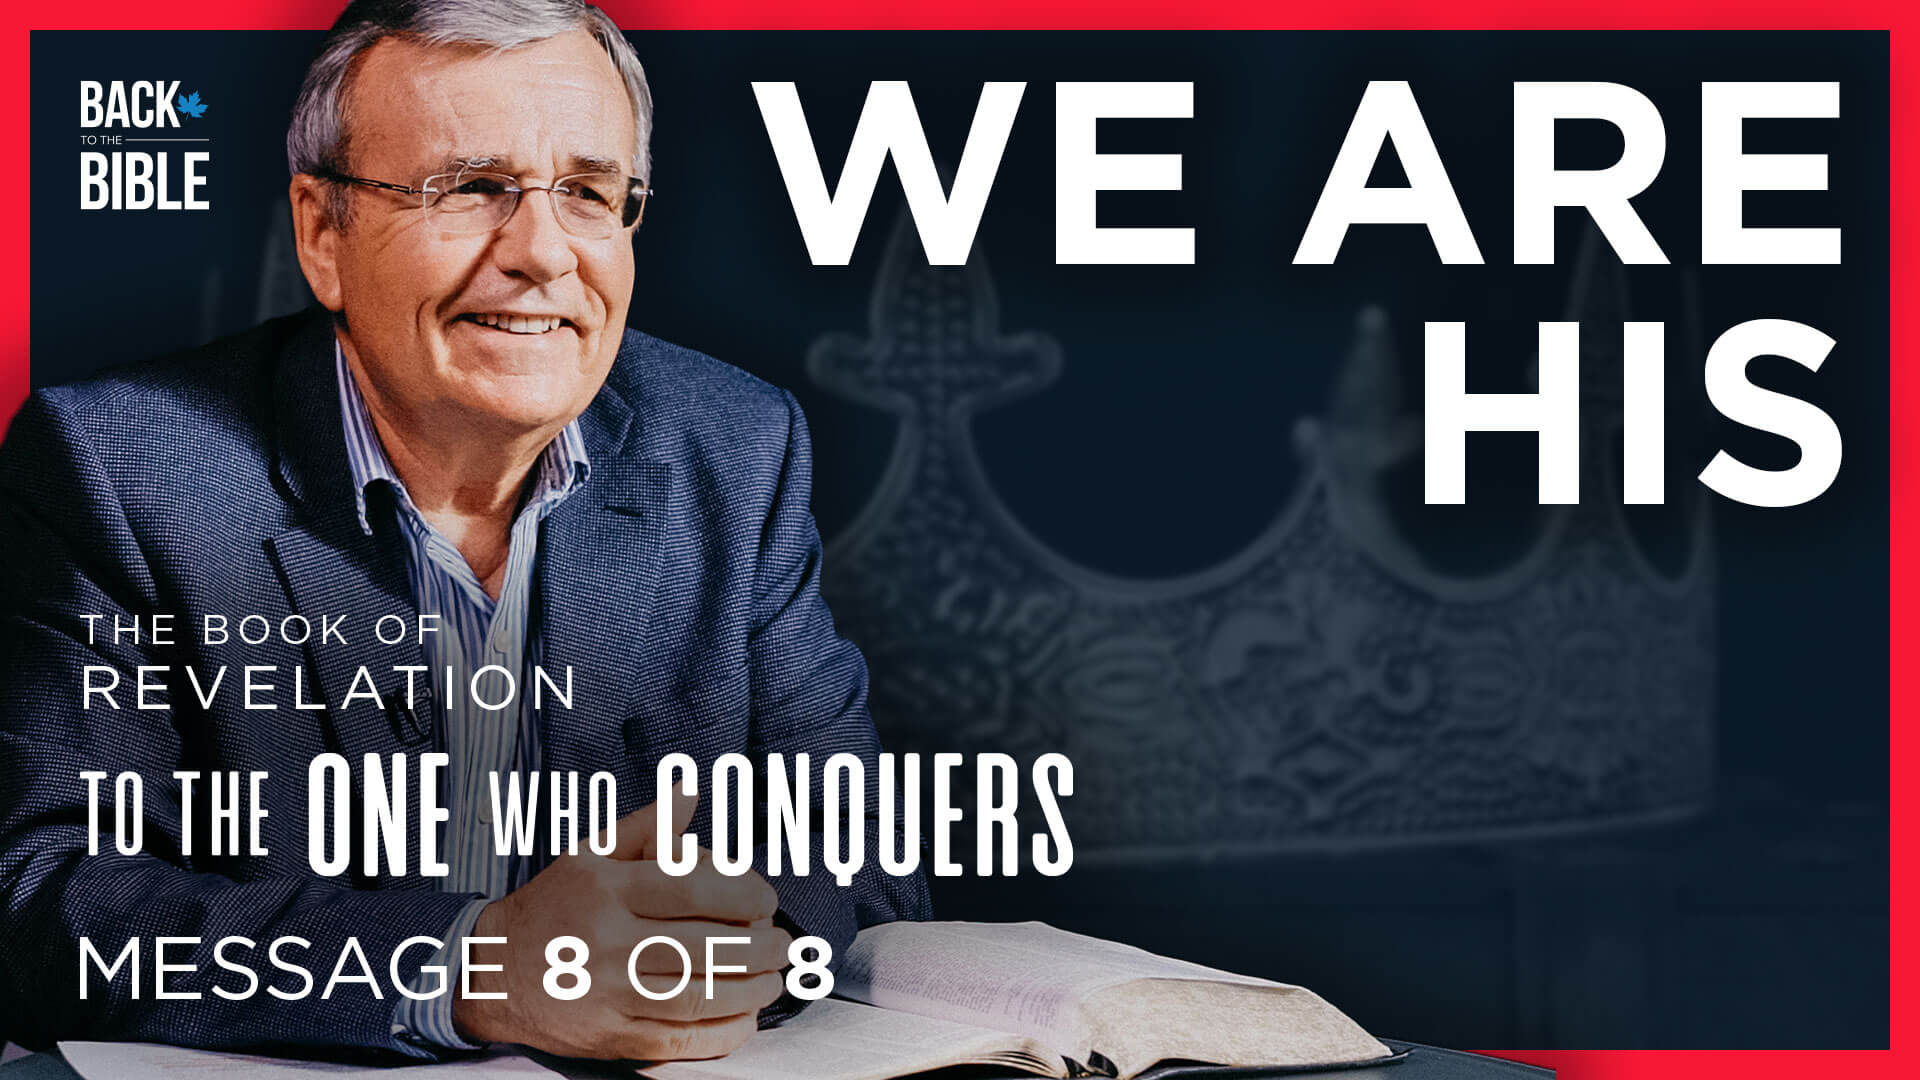 We Are His - To the One Who Conquers - Dr. John Neufeld - Back to the Bible Canada